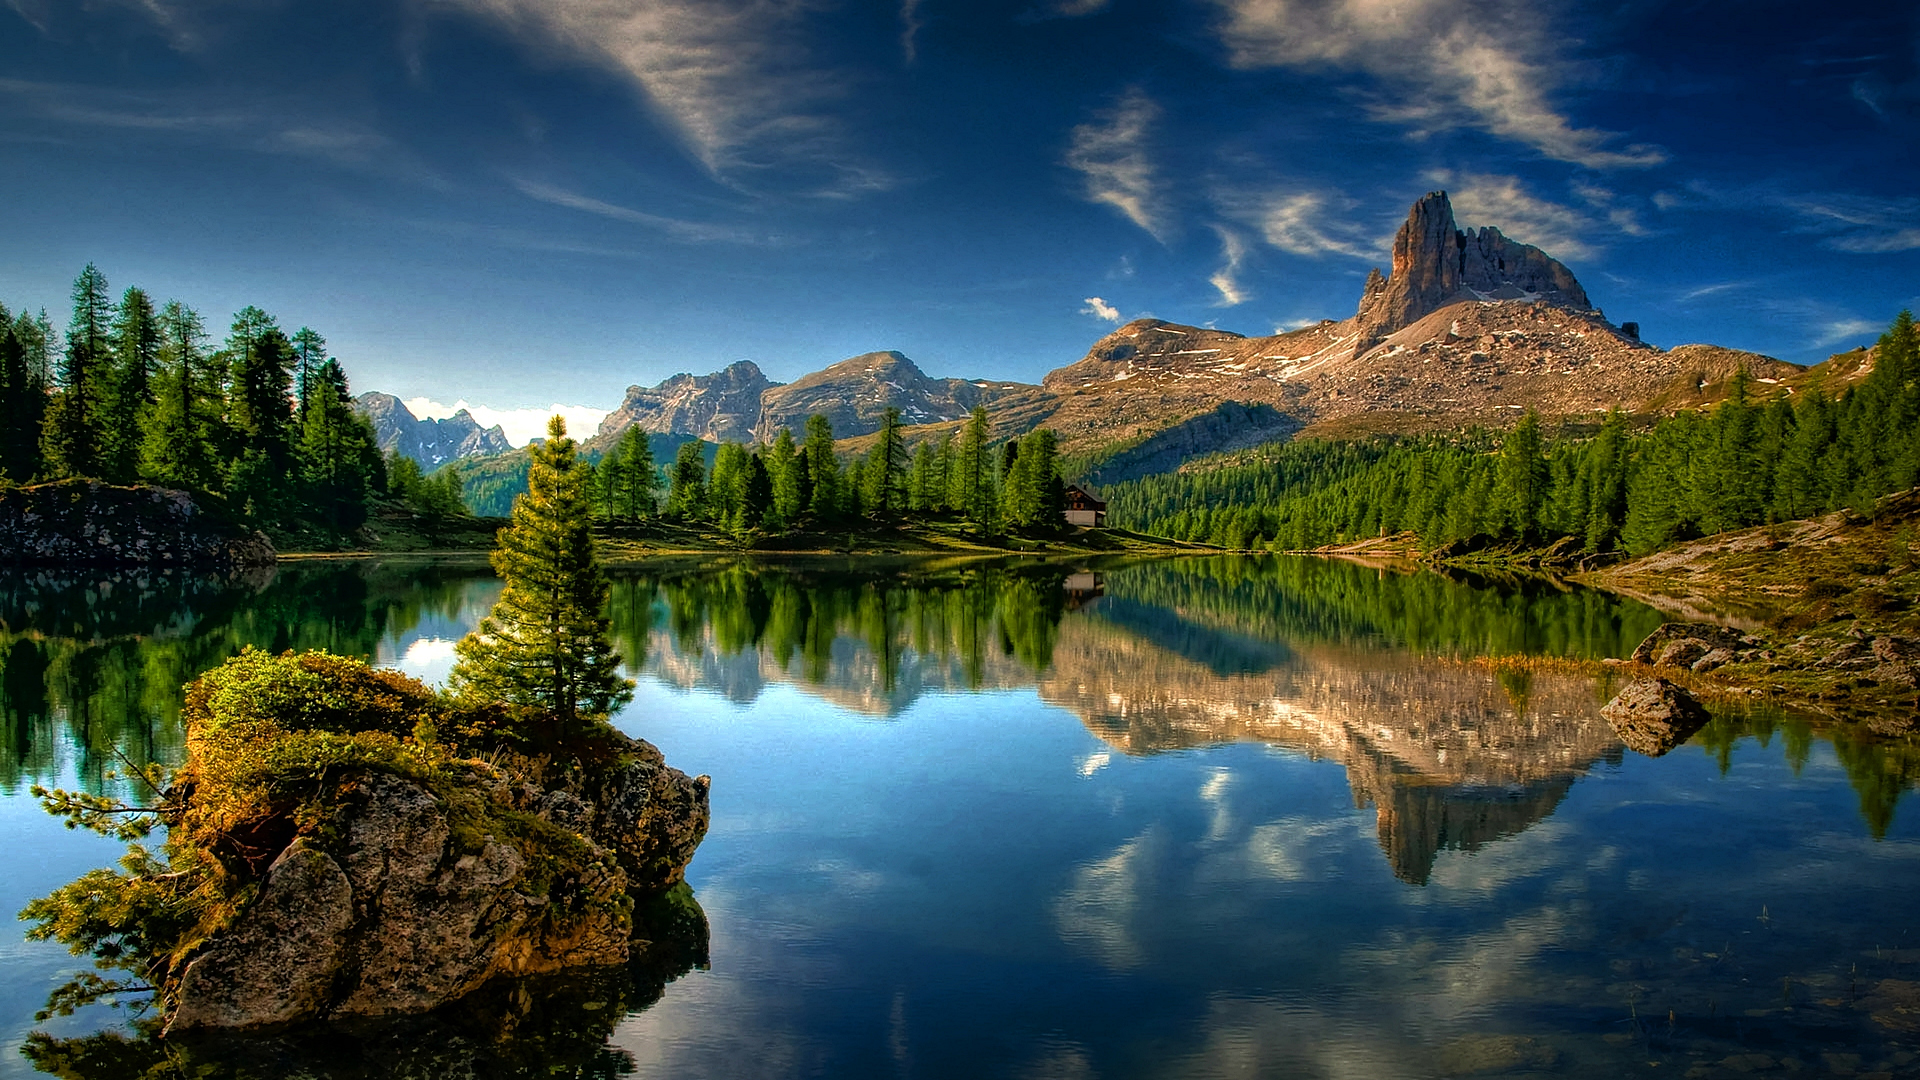 Beautiful Mountain Reflection in the Water